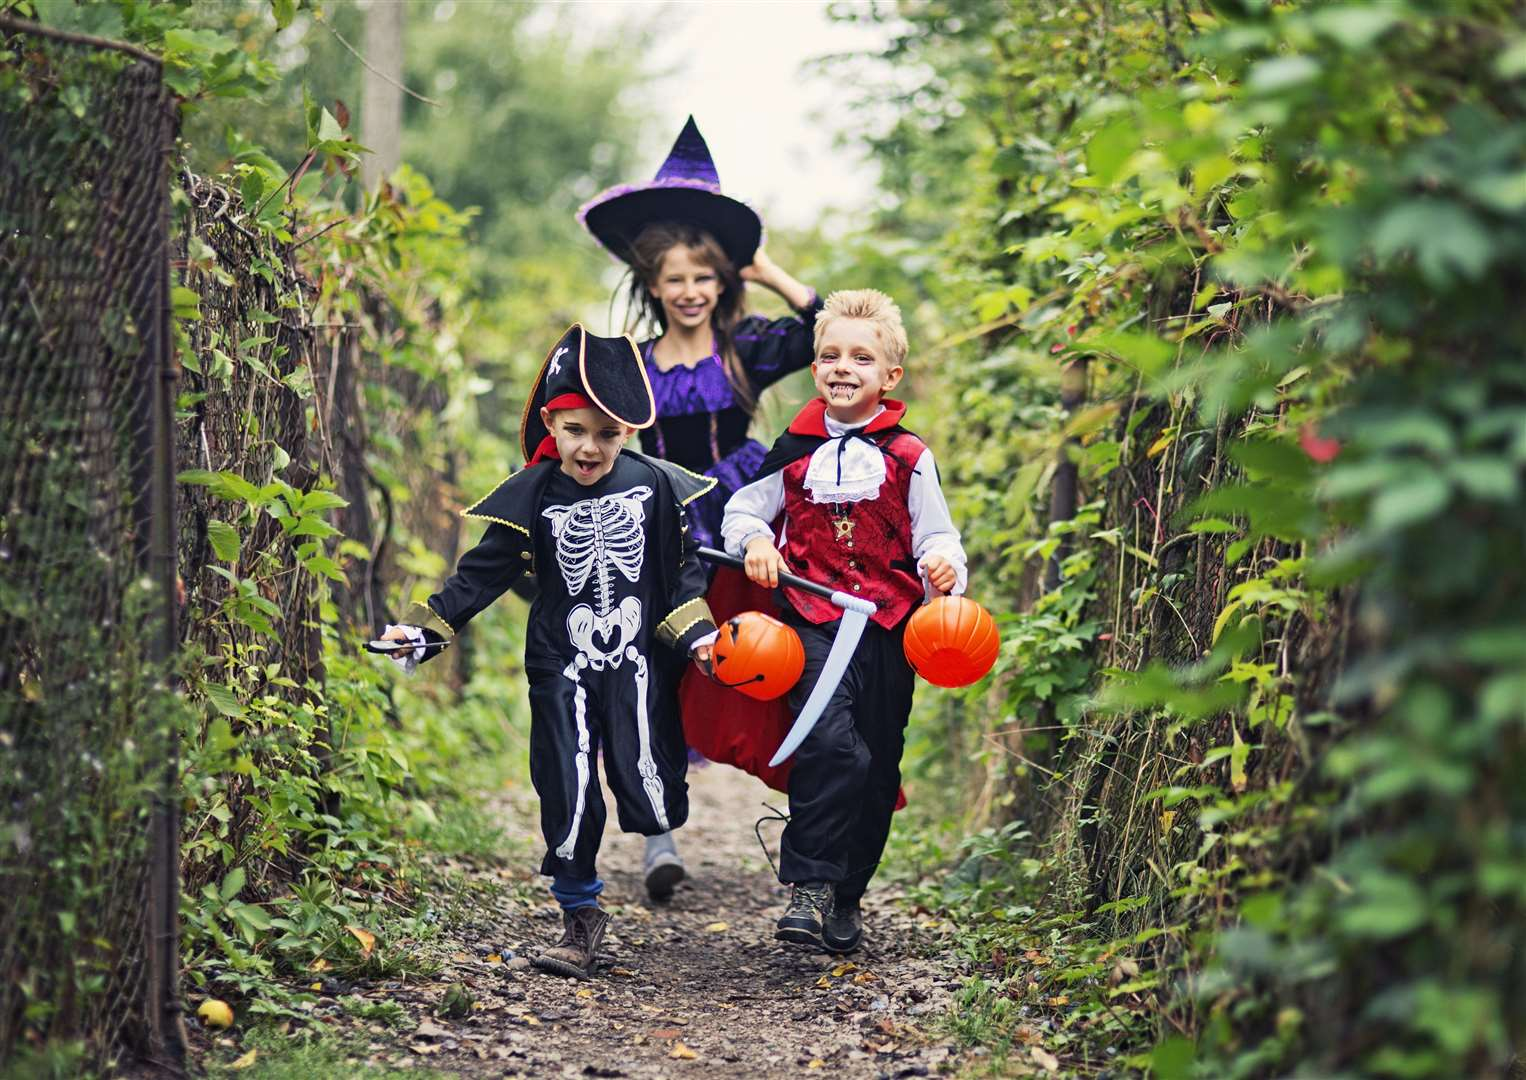 Dig out those fancy dress outfits and head out to an event in Kent